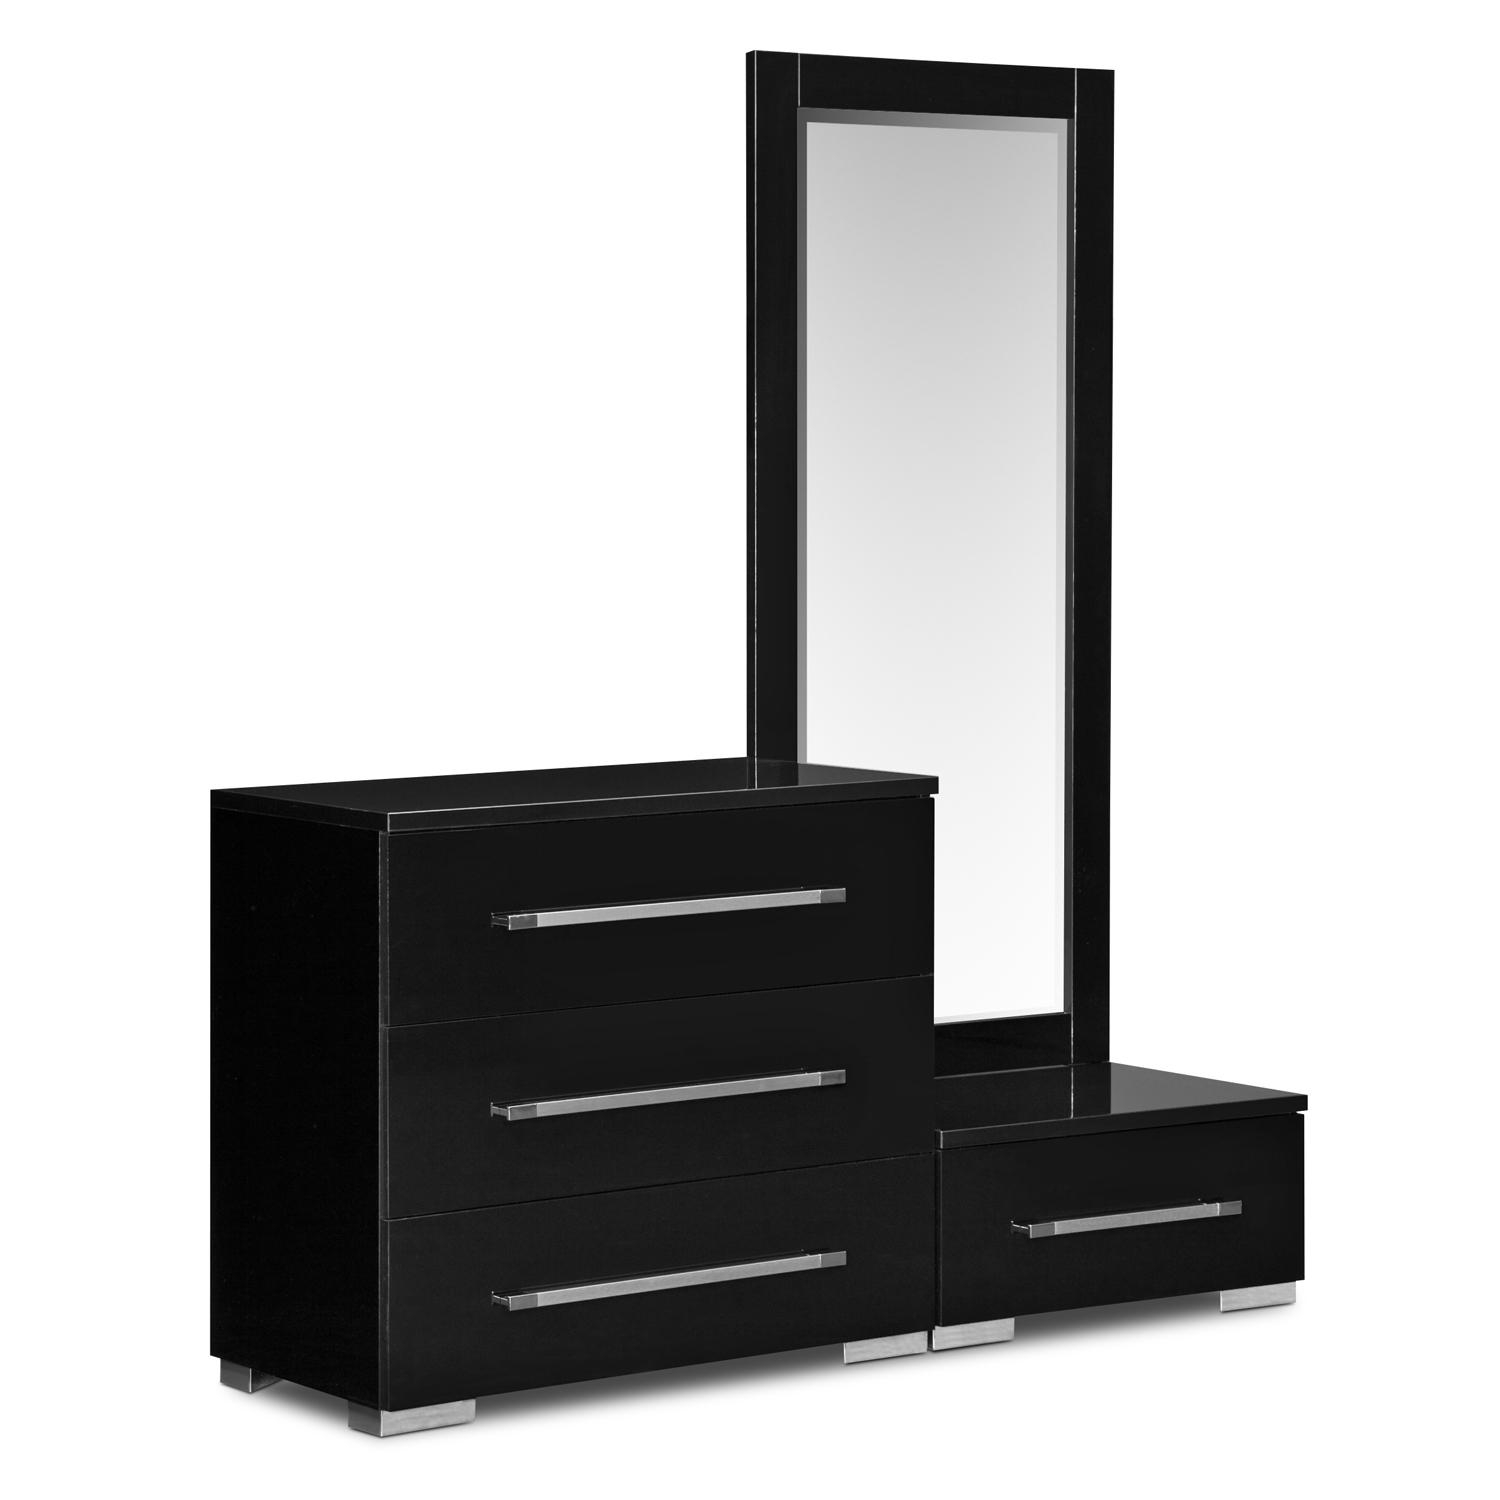 Furniture : Simple Bedroom Mirrors For Dresser Bedroom Area Intended For Modern Bedroom Mirrors (Image 12 of 20)